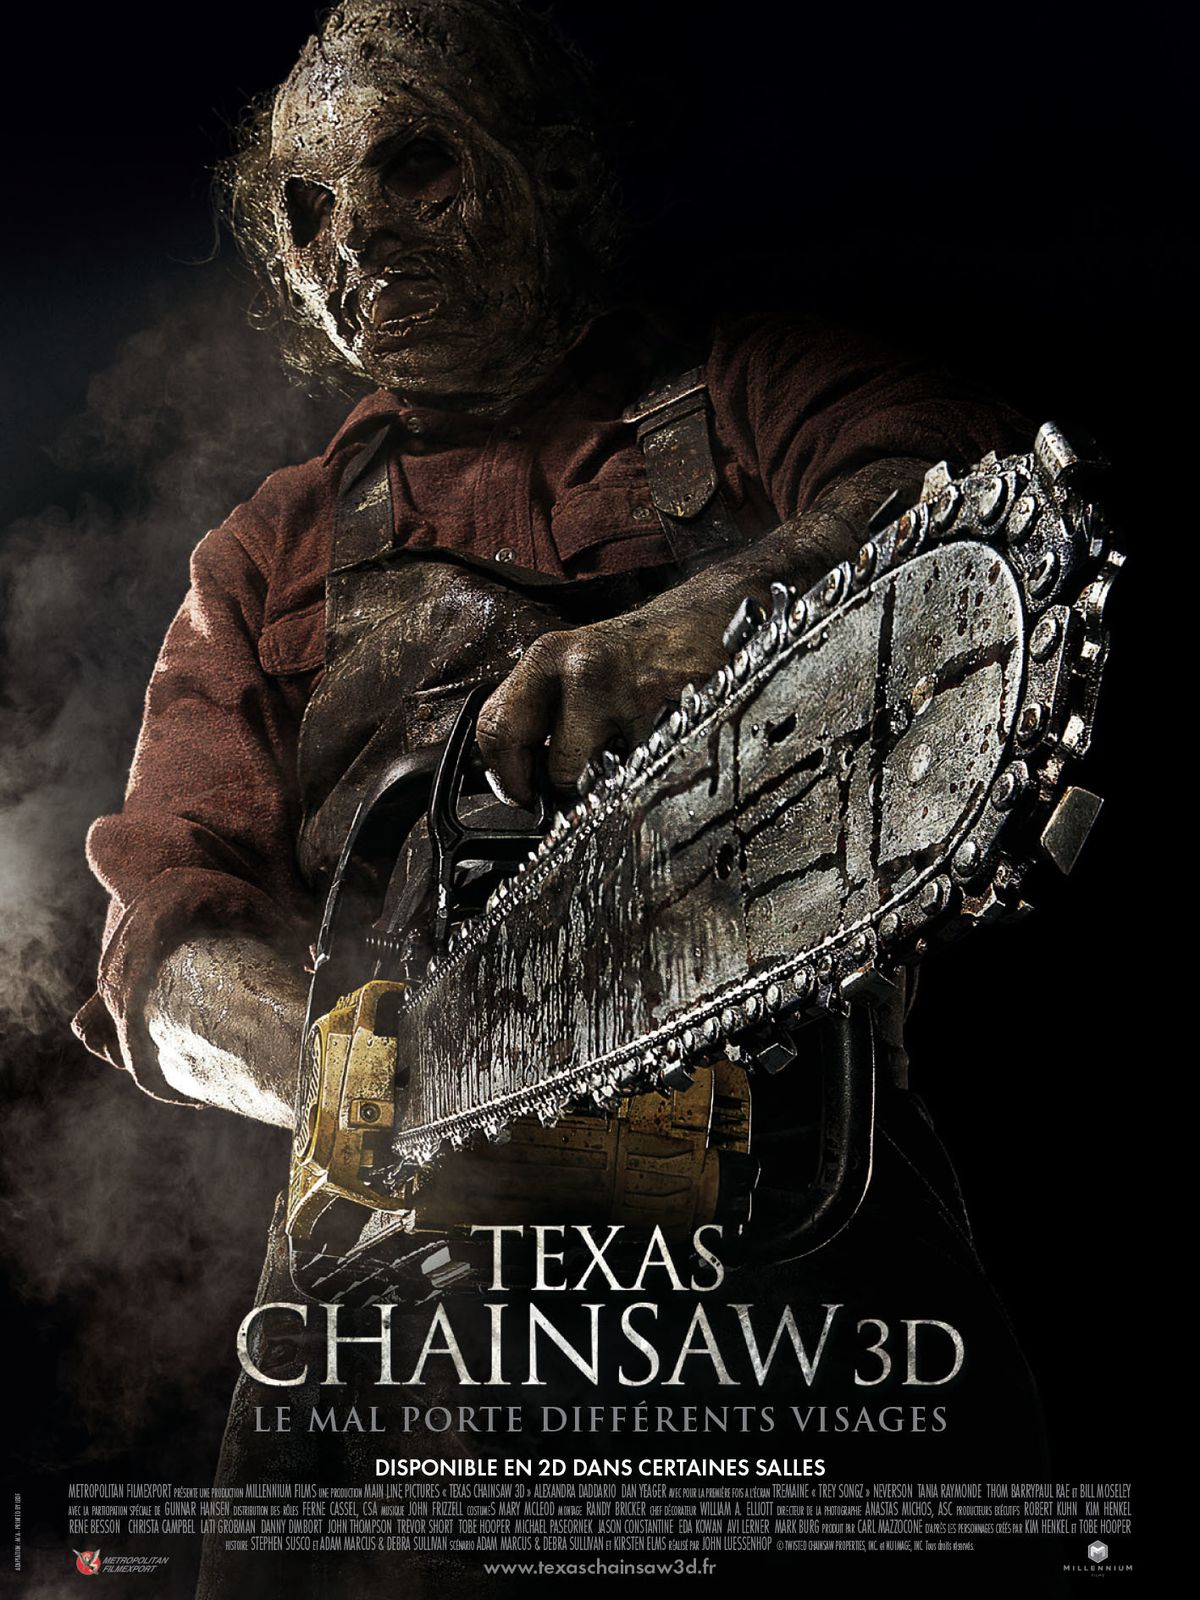 TEXAS CHAINSAW 3D (BANDE ANNONCE VF et VOST) 31 07 2013